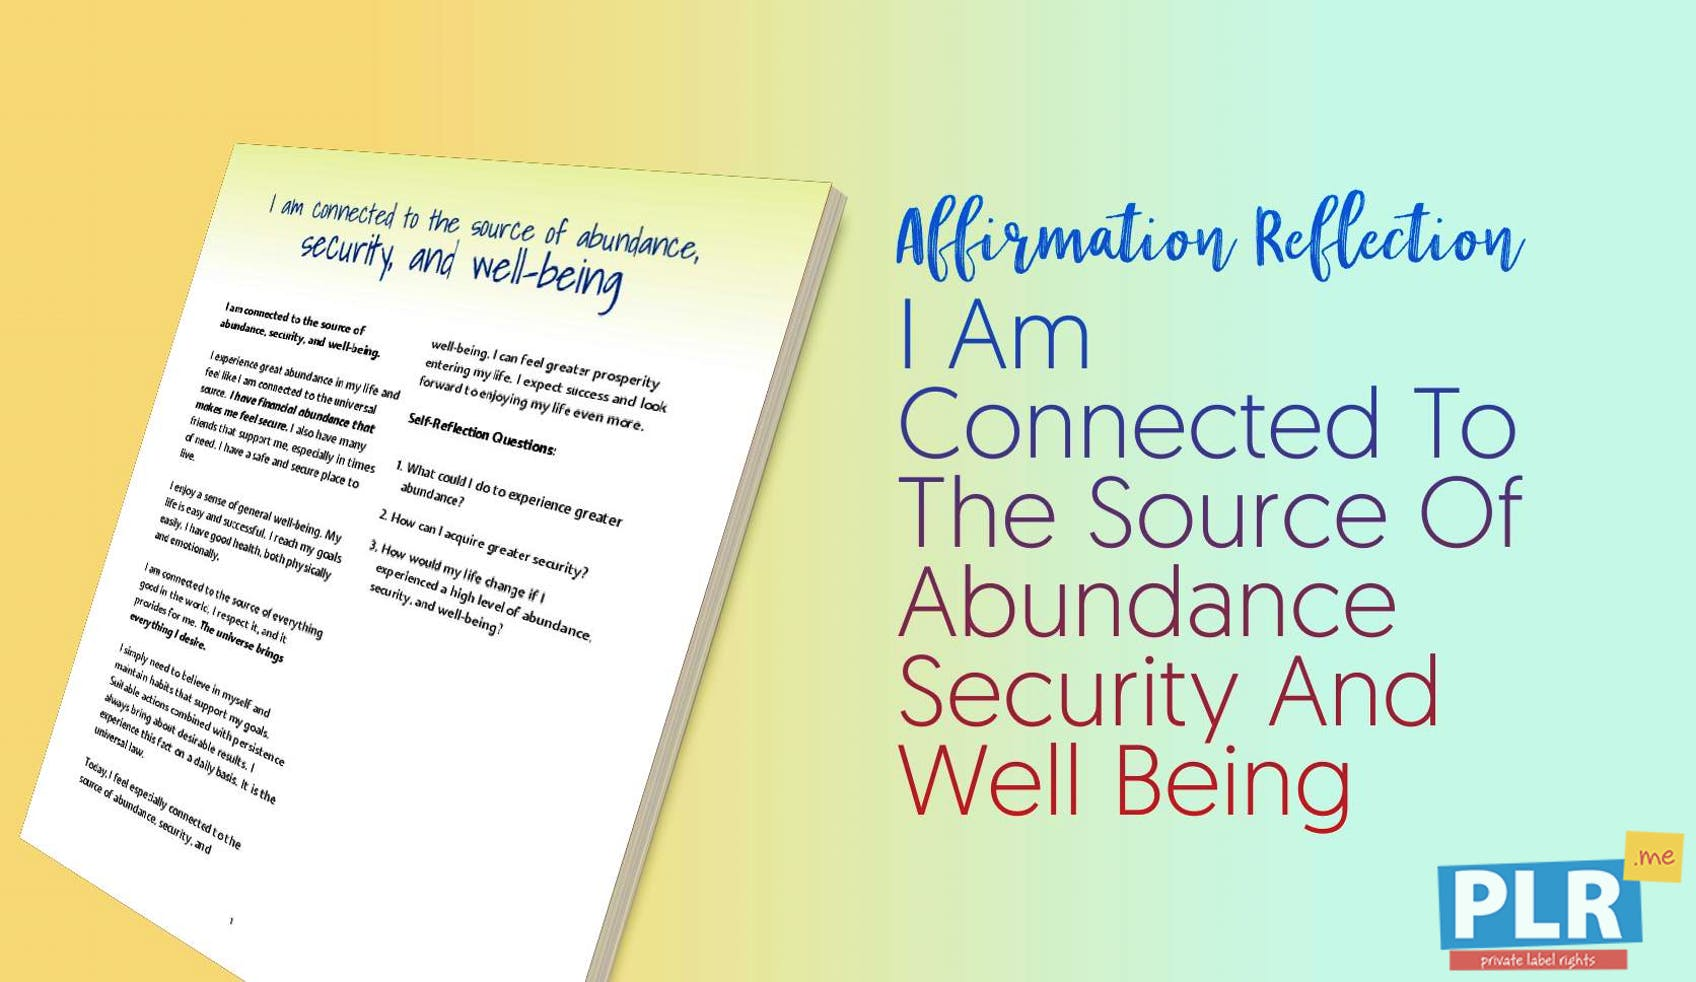 I Am Connected To The Source Of Abundance Security And Well Being